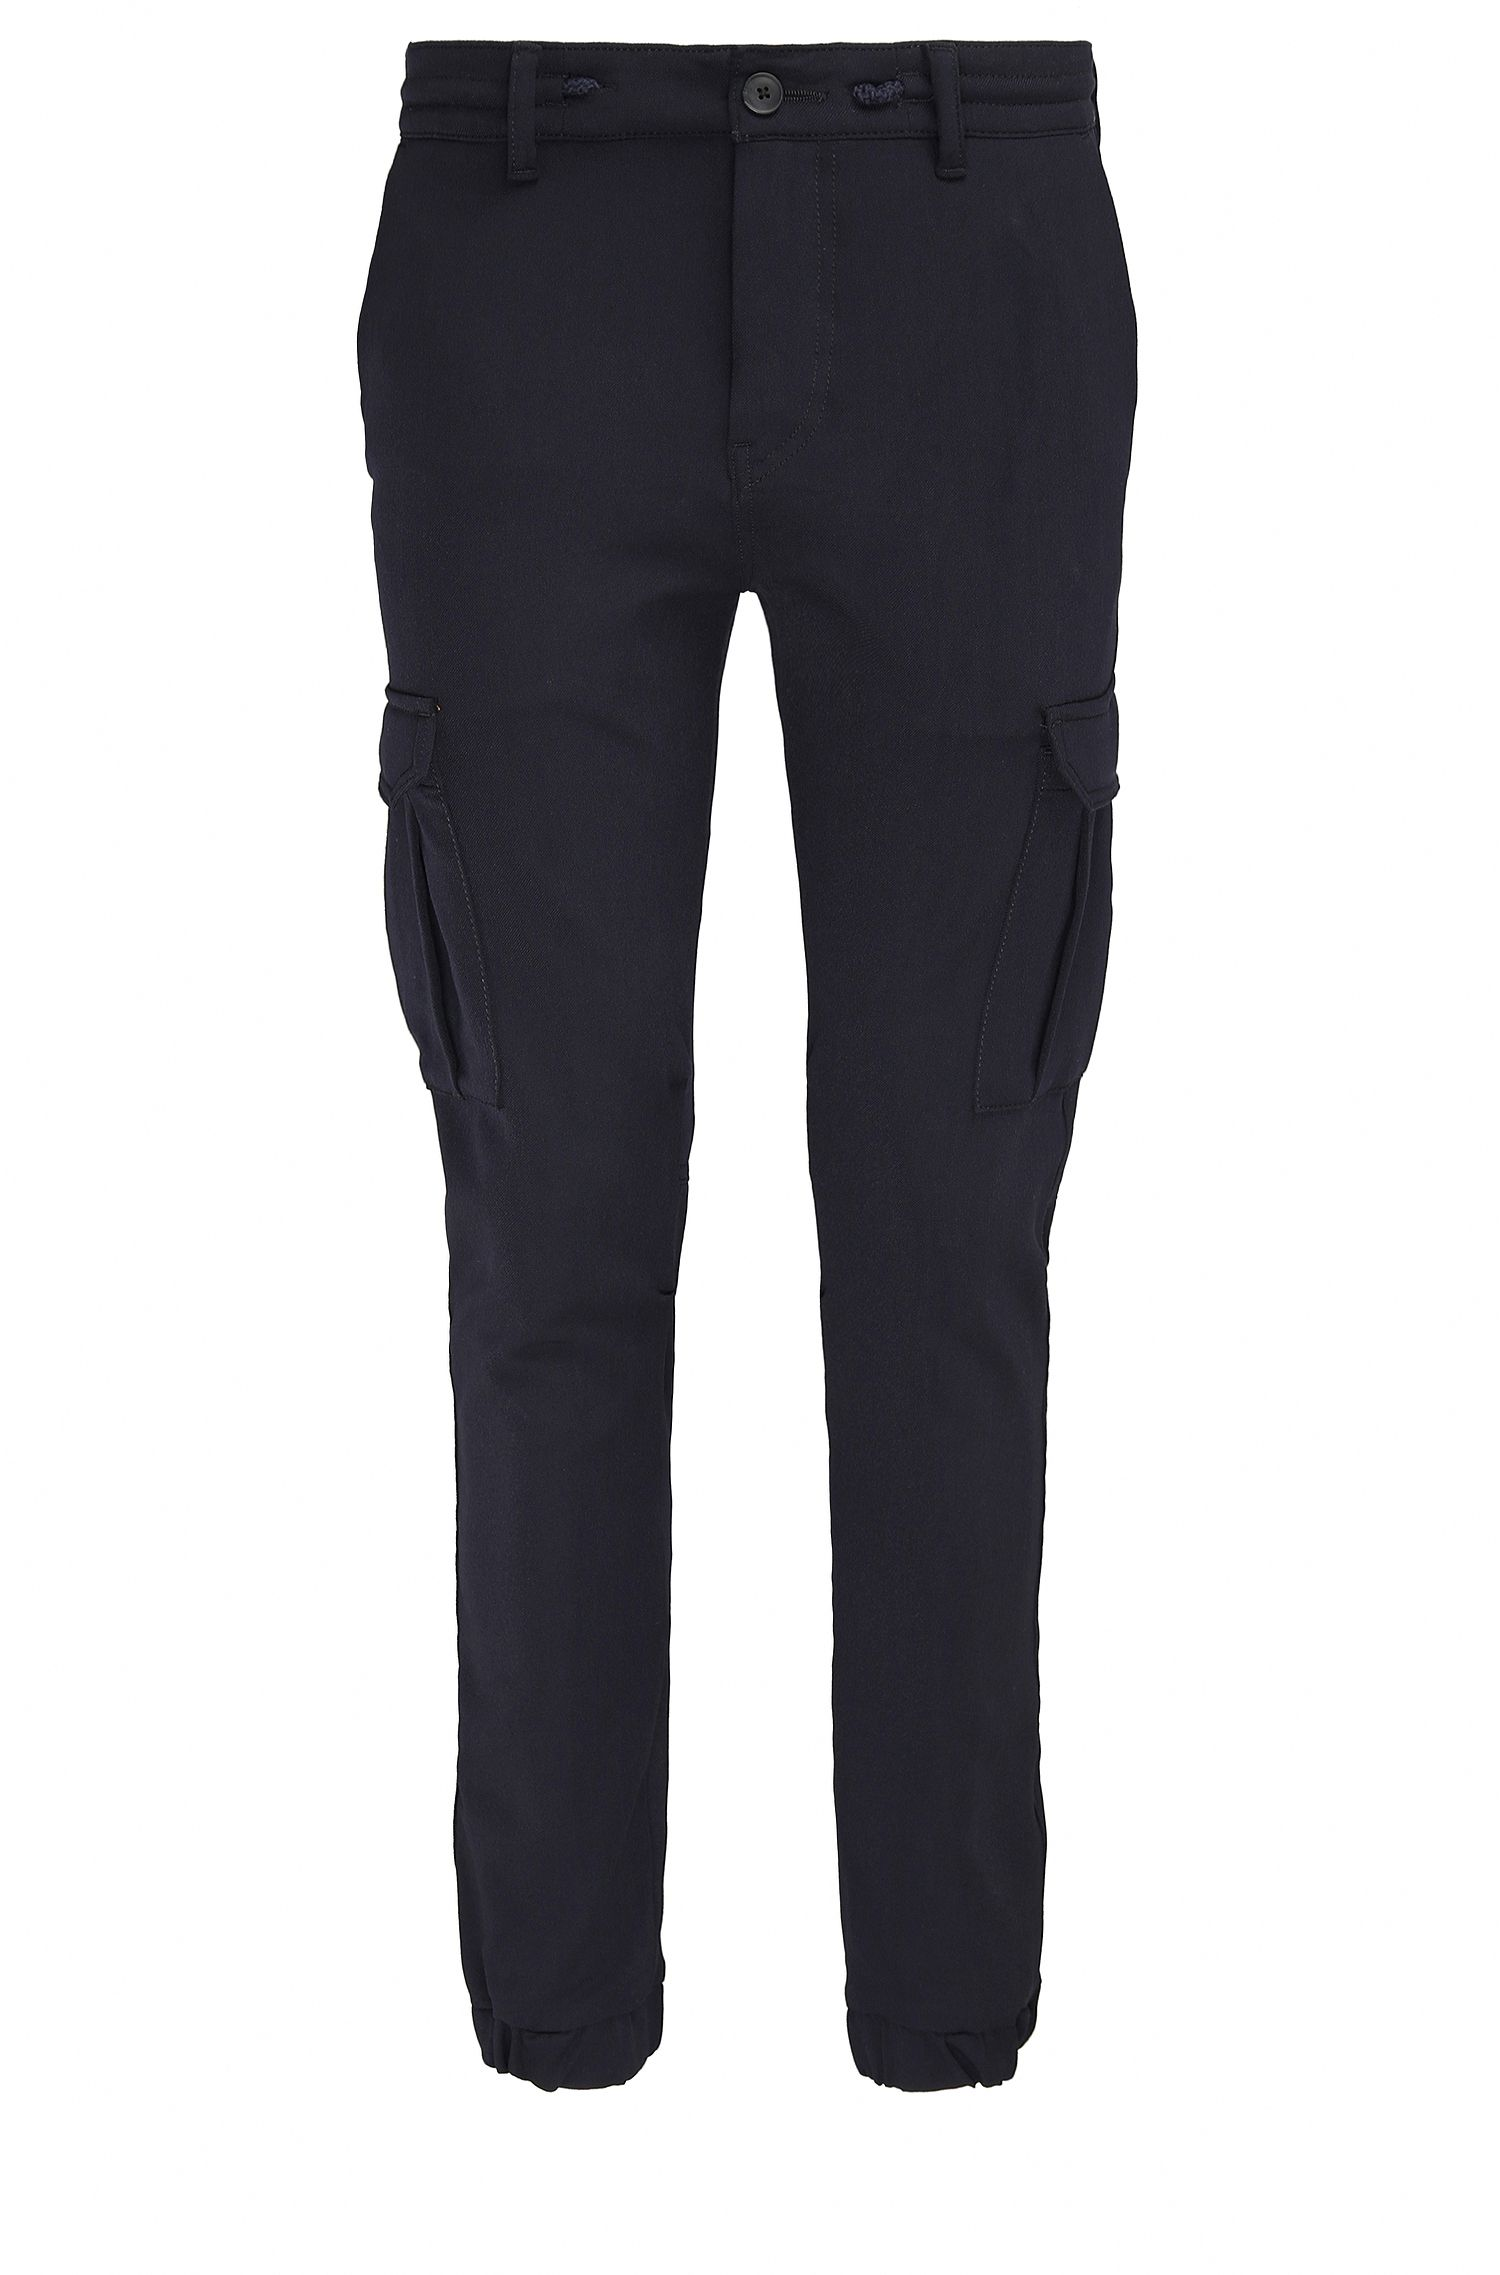 'Shay' | Tapered Fit, Twill Cargo Pants